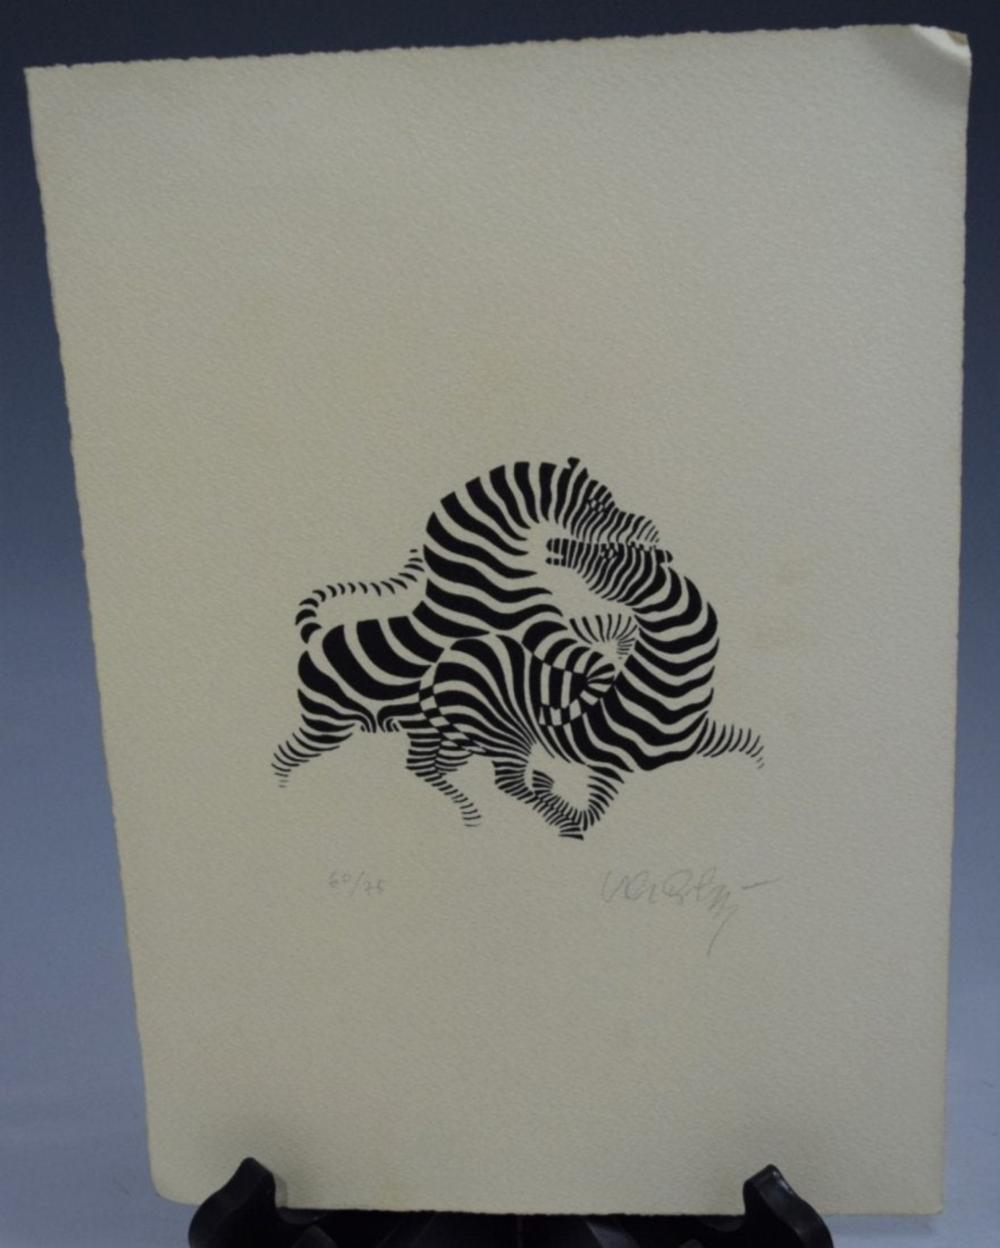 Victor Vasarely, Etching (Signed)